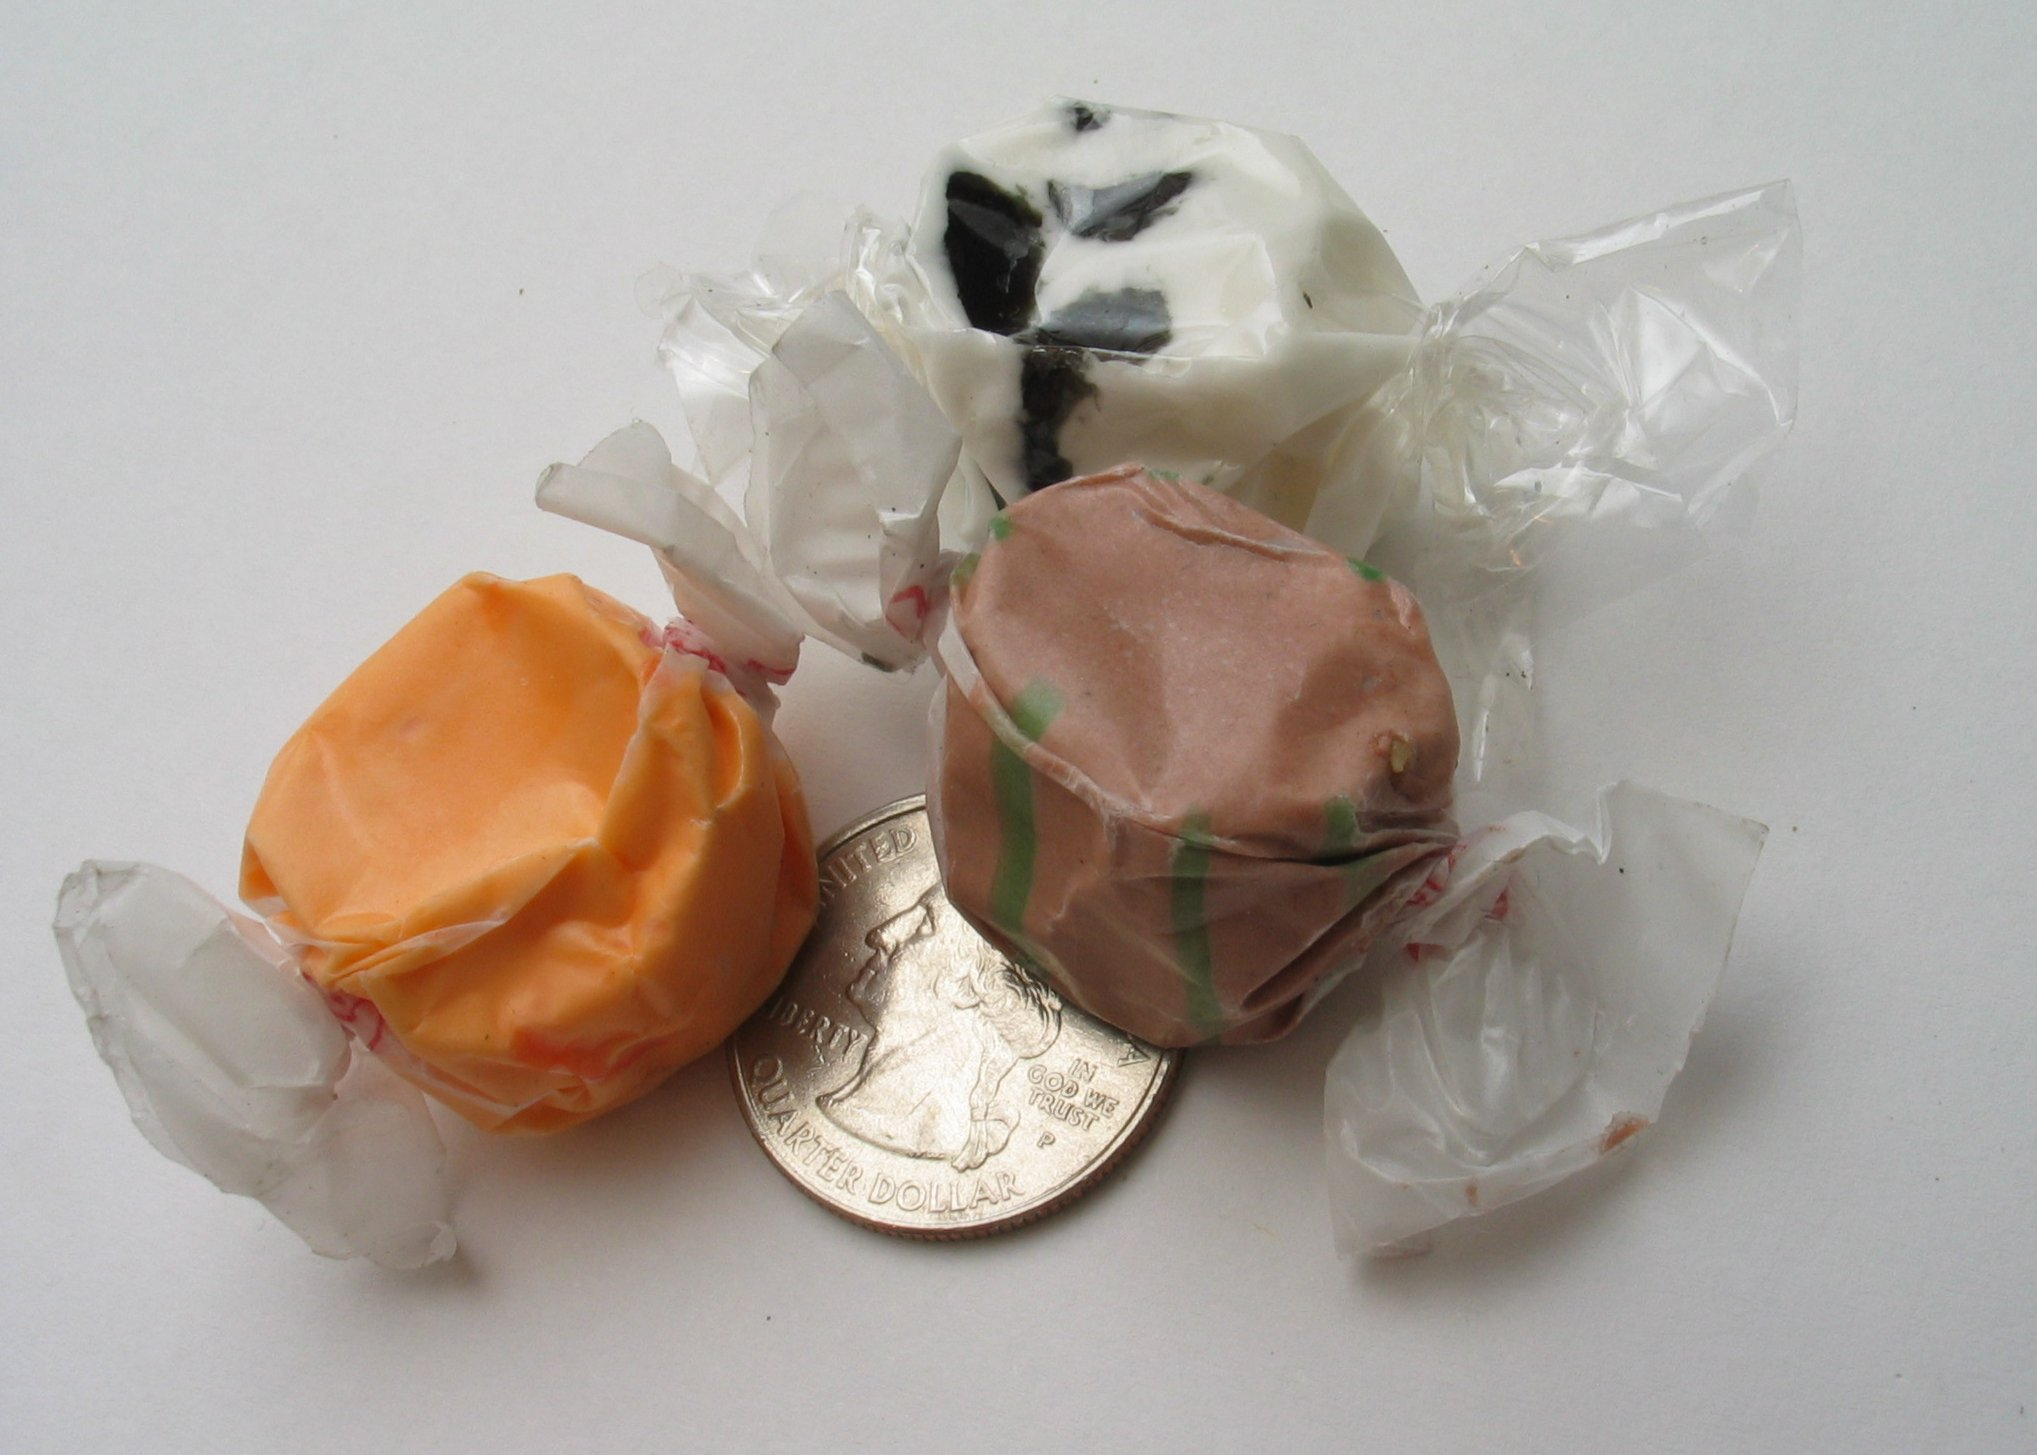 Salt water taffy - Wikipedia